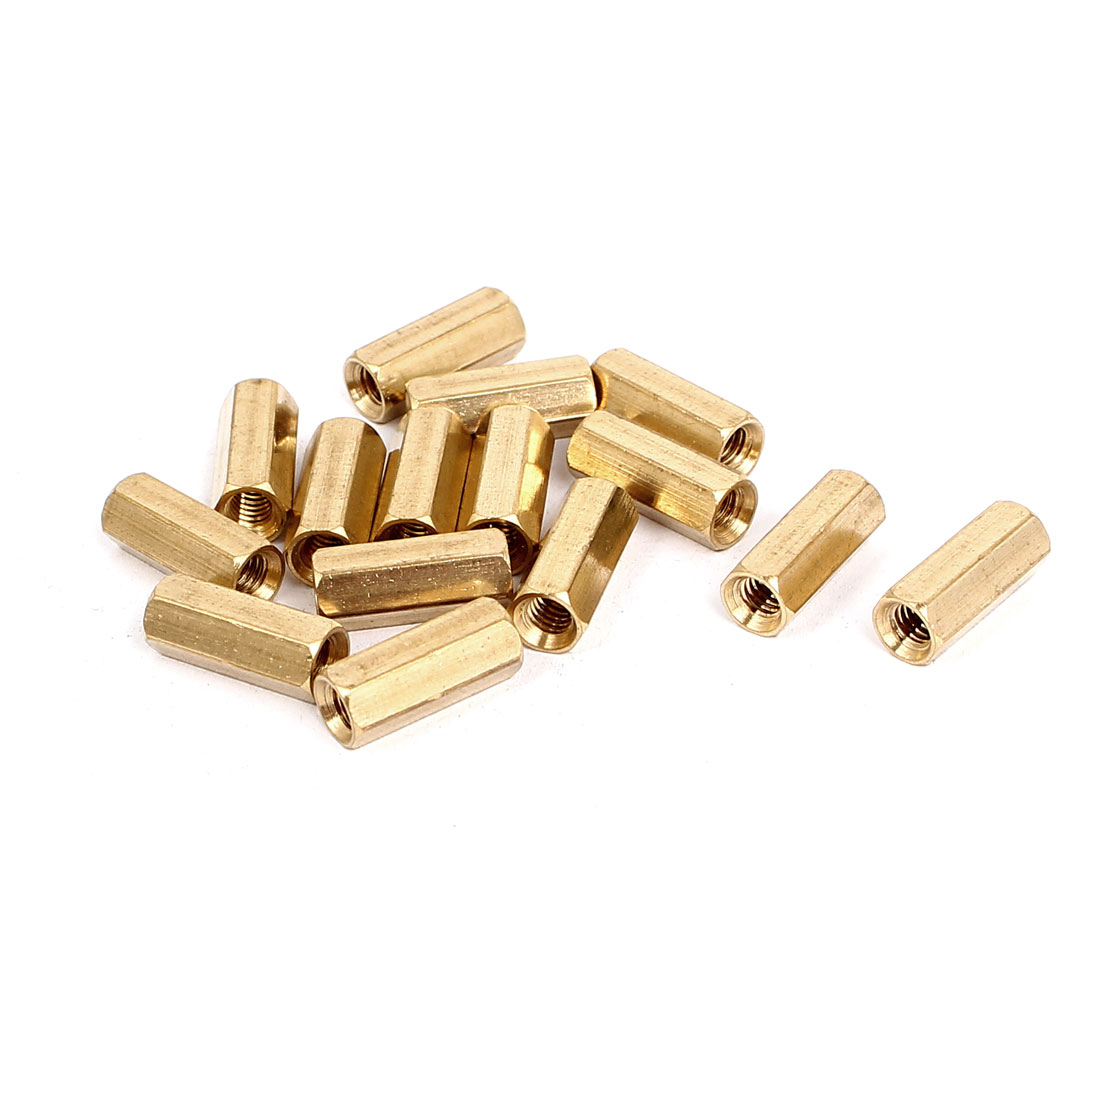 M4x15mm Brass Hex Hexagonal Female Thread PCB Standoff Spacer 15pcs